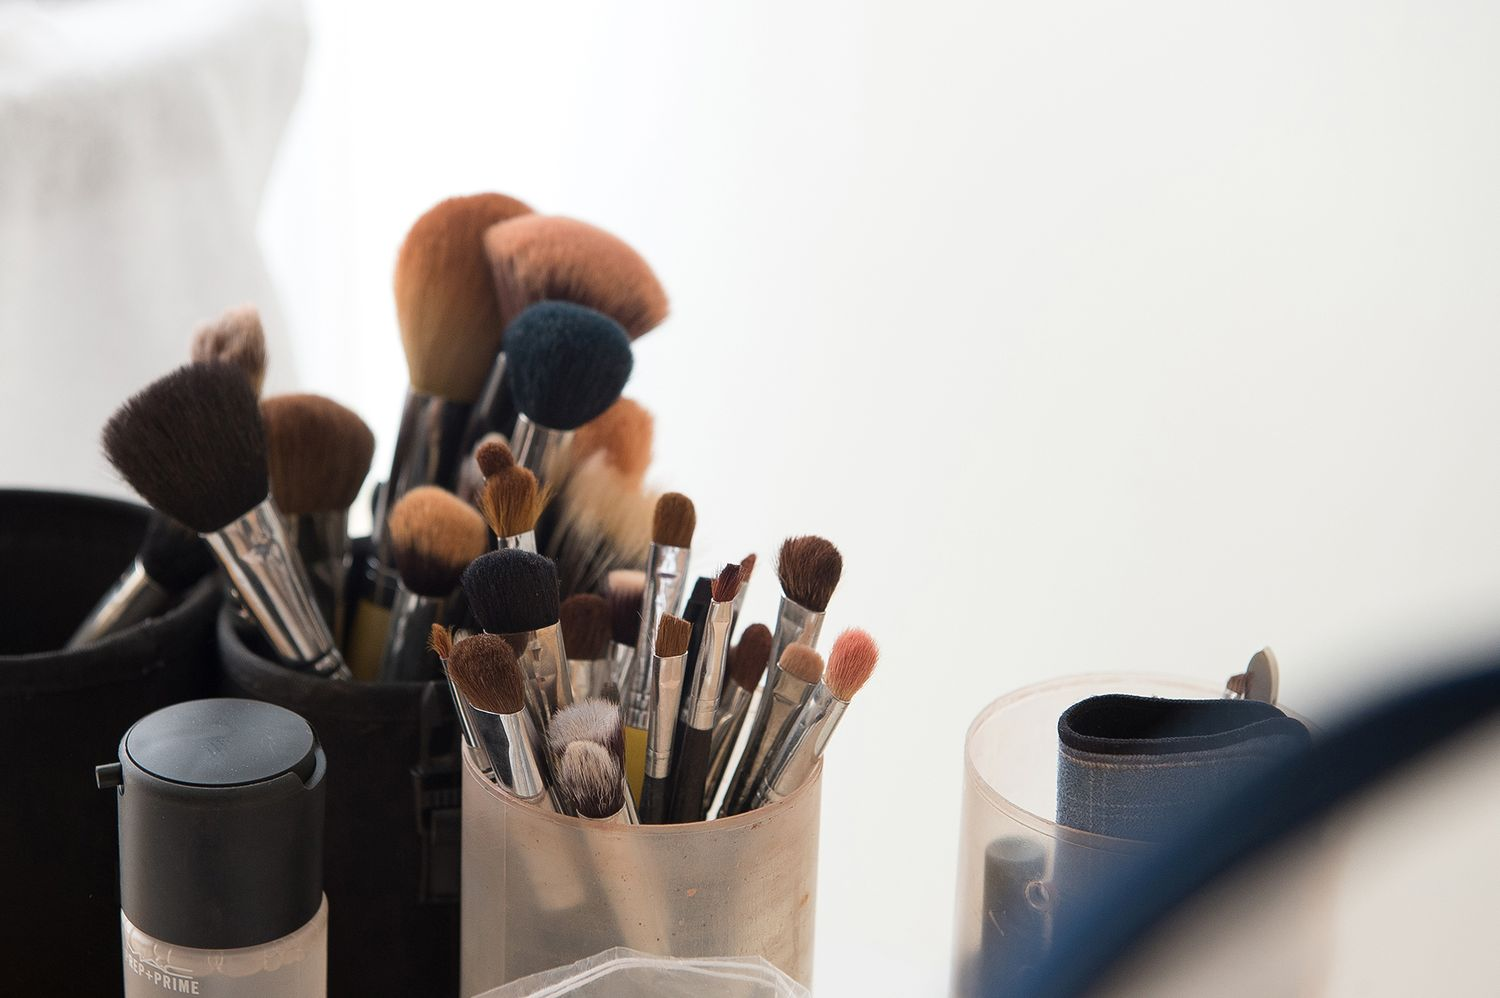 professional make up brushes during bride's preparation